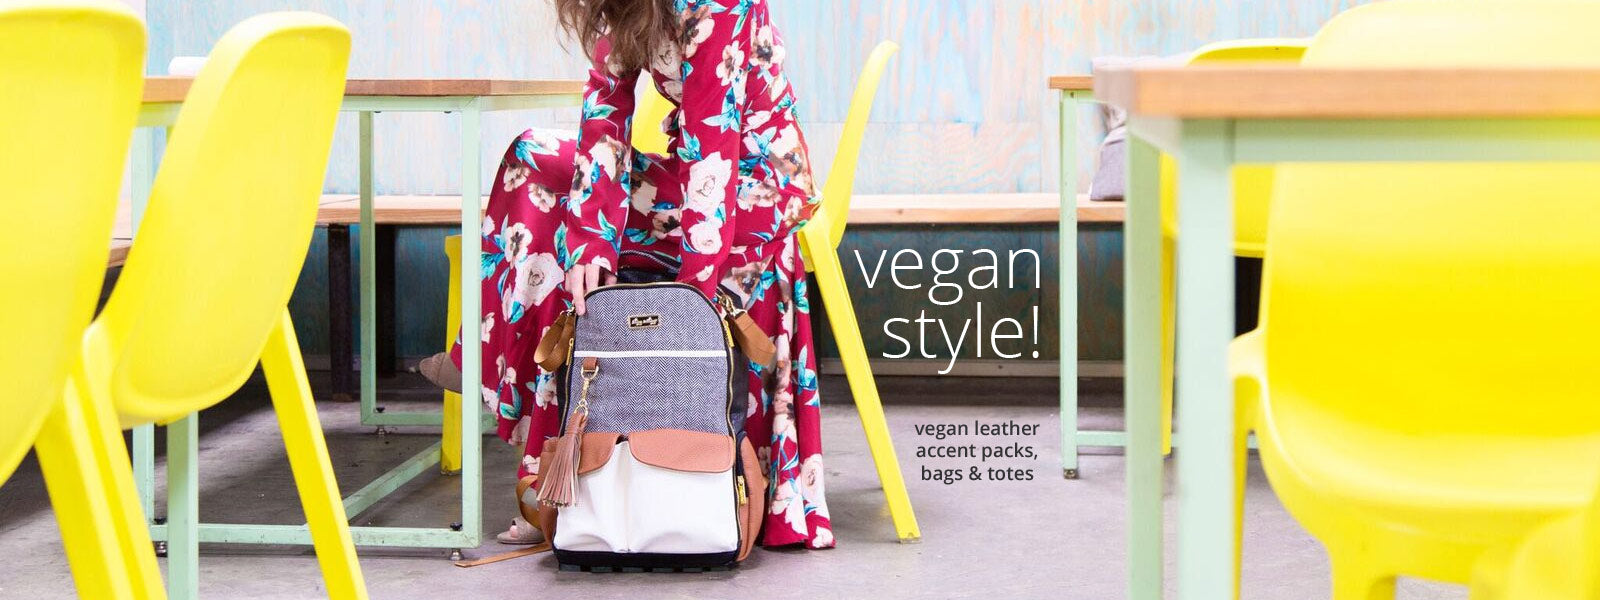 Vegan Leather Diaper Bags